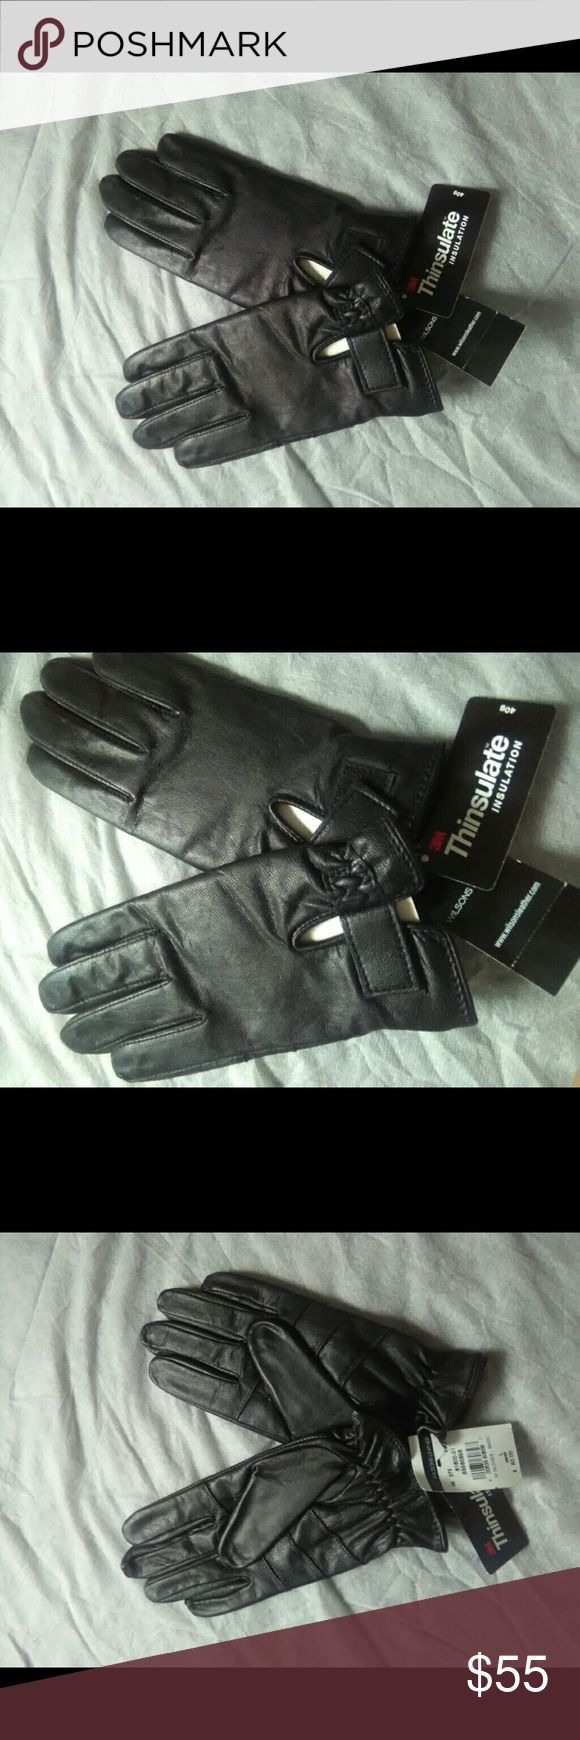 Mens gloves use iphone - Leather Gloves Softest Men S Nwt